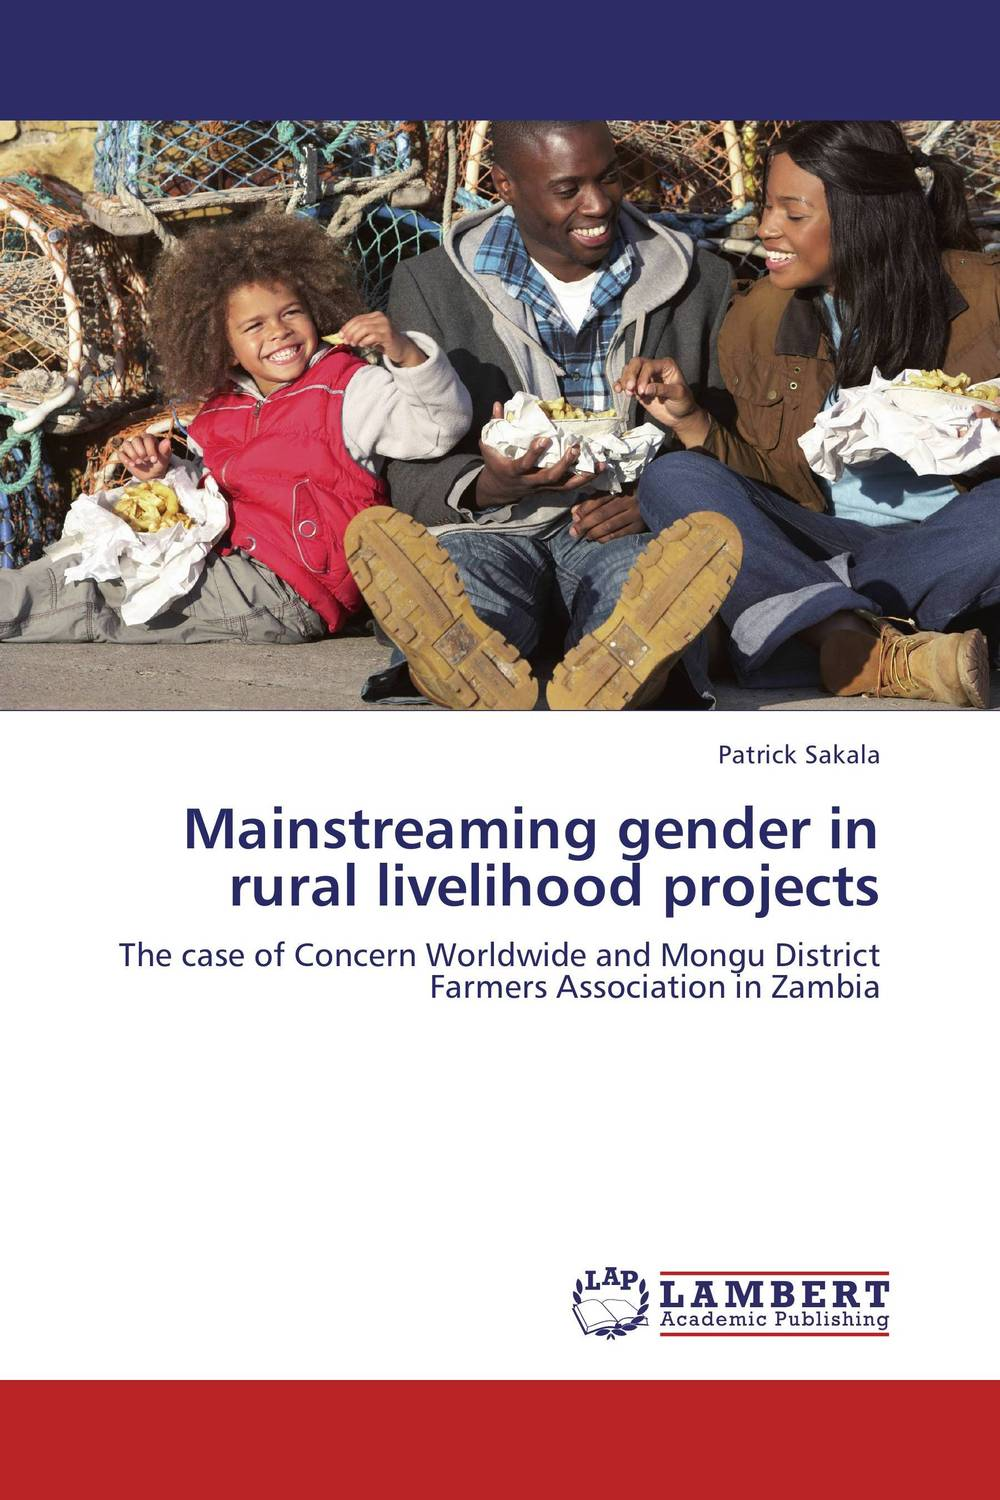 Mainstreaming gender in rural livelihood projects